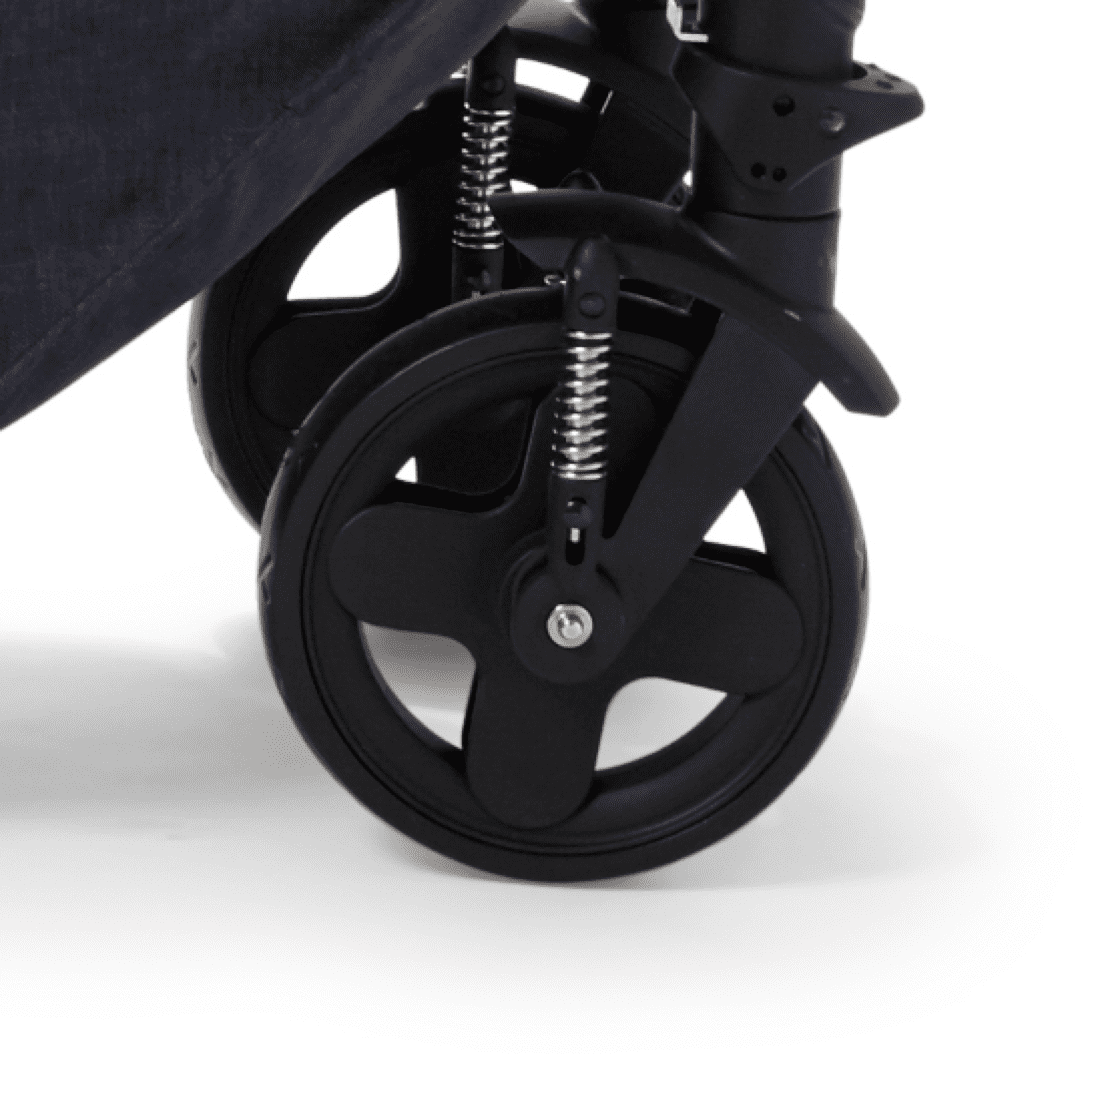 Venti Front Wheel – Each product image